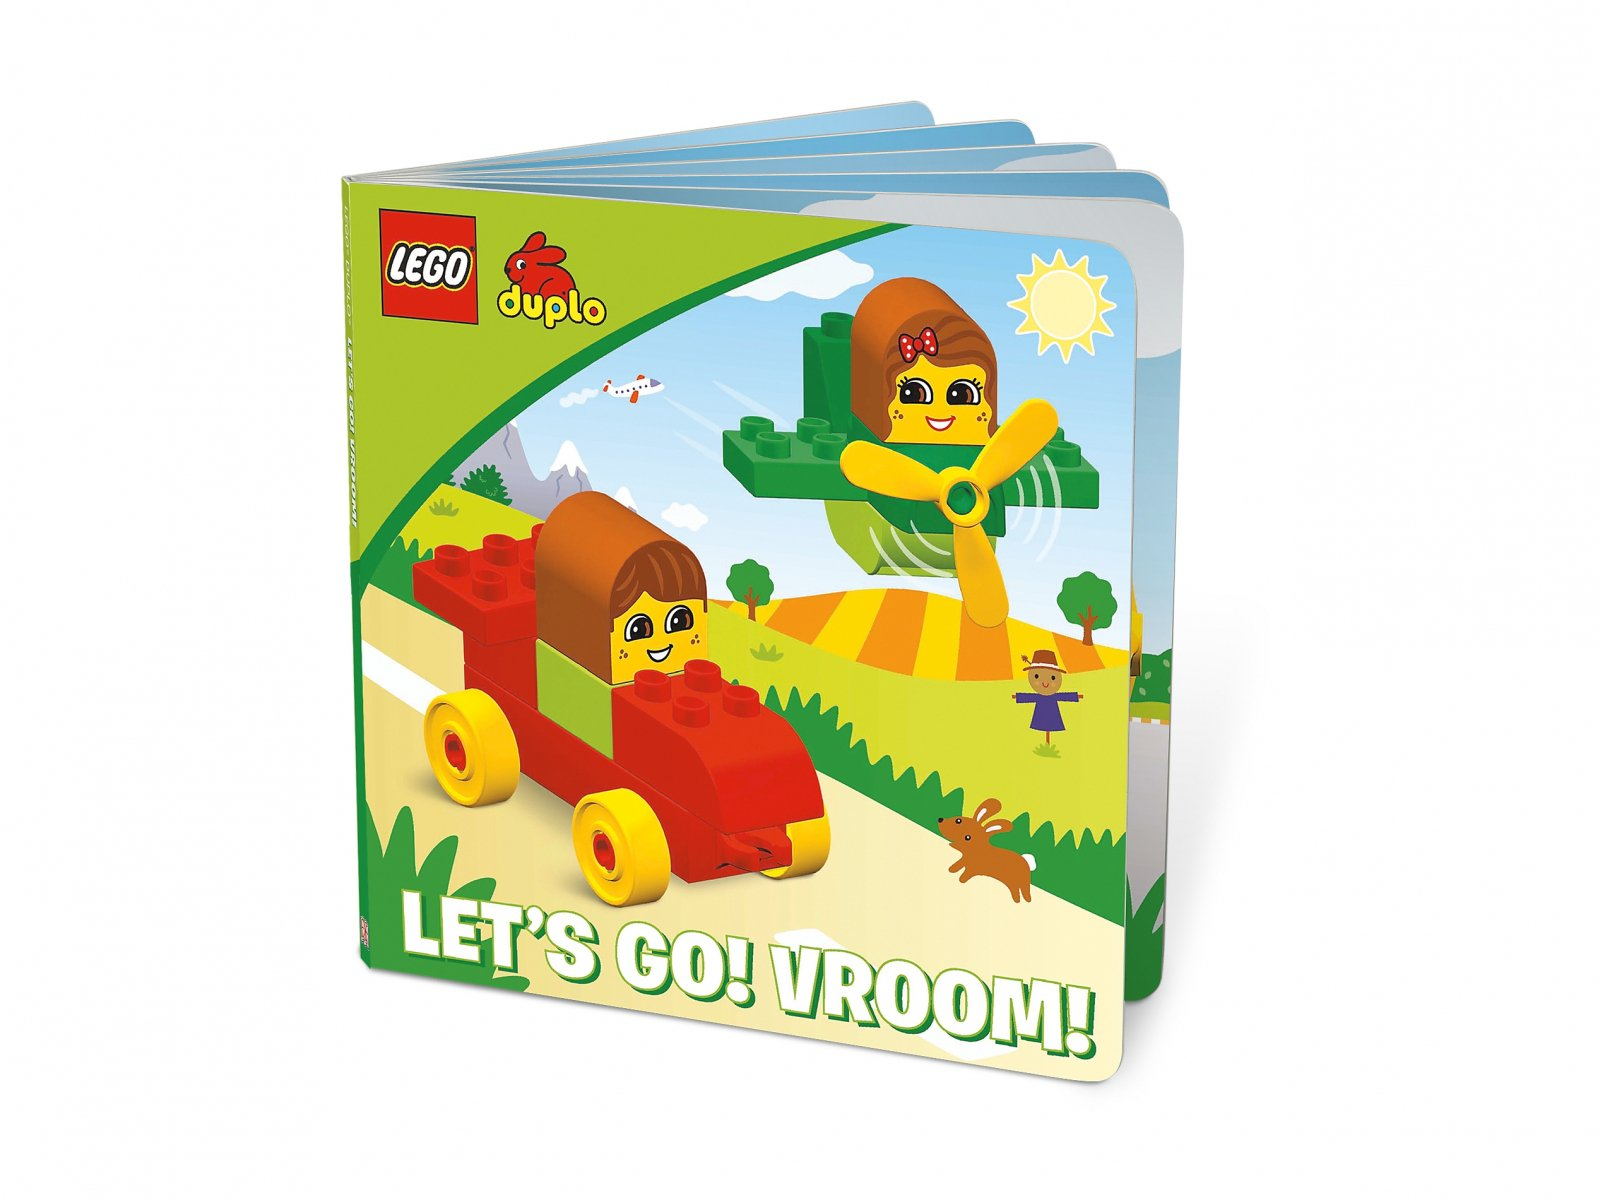 LEGO 6760 Let's Go! Vroom!